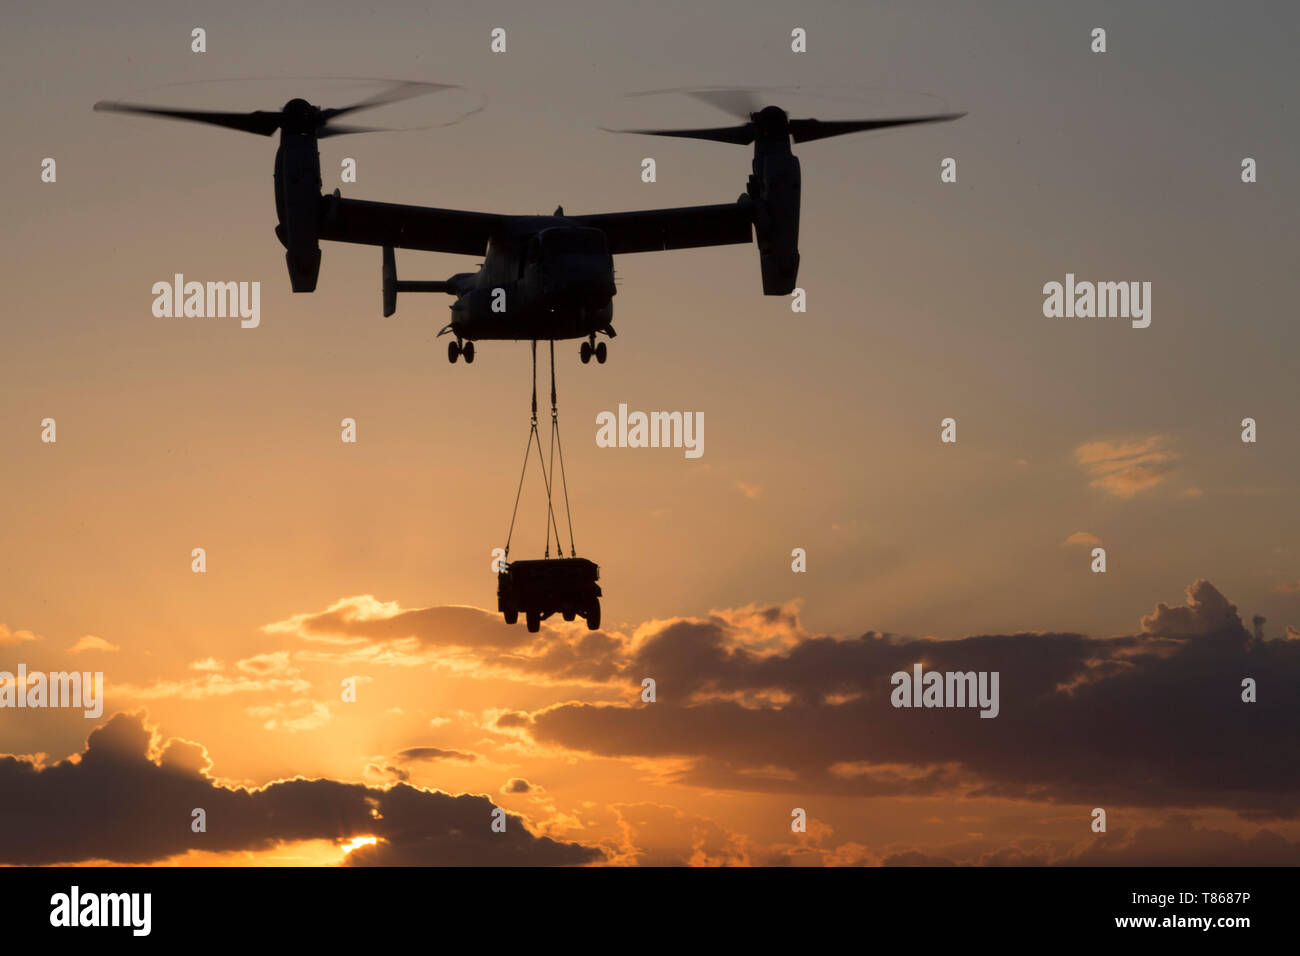 A U.S. Marine Corps MV-22B Osprey with Special Purpose Marine Air-Ground Task Force-Crisis Response-Africa 19.2, Marine Forces Europe and Africa, lifts a humvee during external-lift training at Naval Air Station Sigonella, Italy, May 1, 2019. SPMAGTF-CR-AF is deployed to conduct crisis-response and theater-security operations in Africa and promote regional stability by conducting military-to-military training exercises throughout Europe and Africa. (U.S. Marine Corps photo by Staff Sgt. Mark E. Morrow Jr. ) Stock Photo